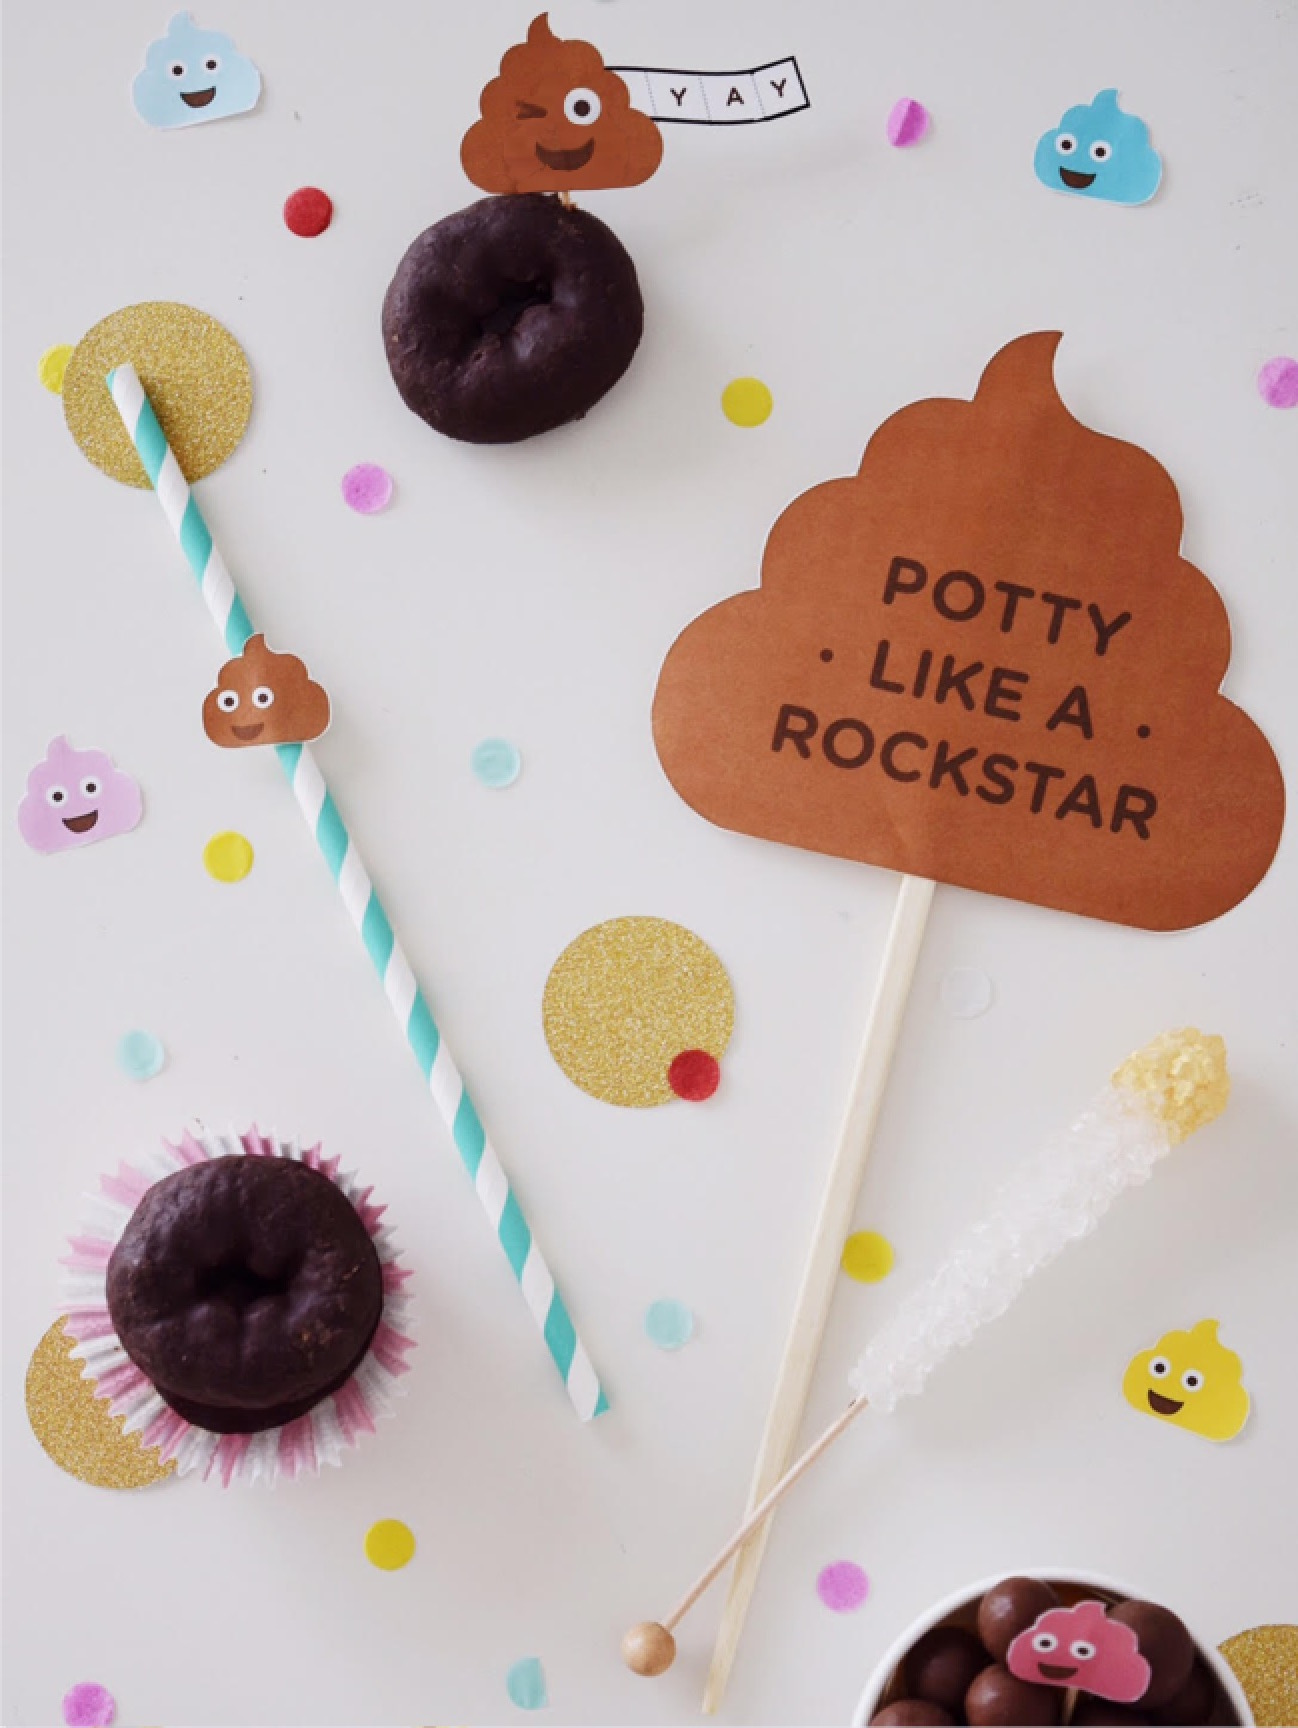 DIY Potty Like Rockstar Party and Printable Photo Booth Props   Potty Training Party